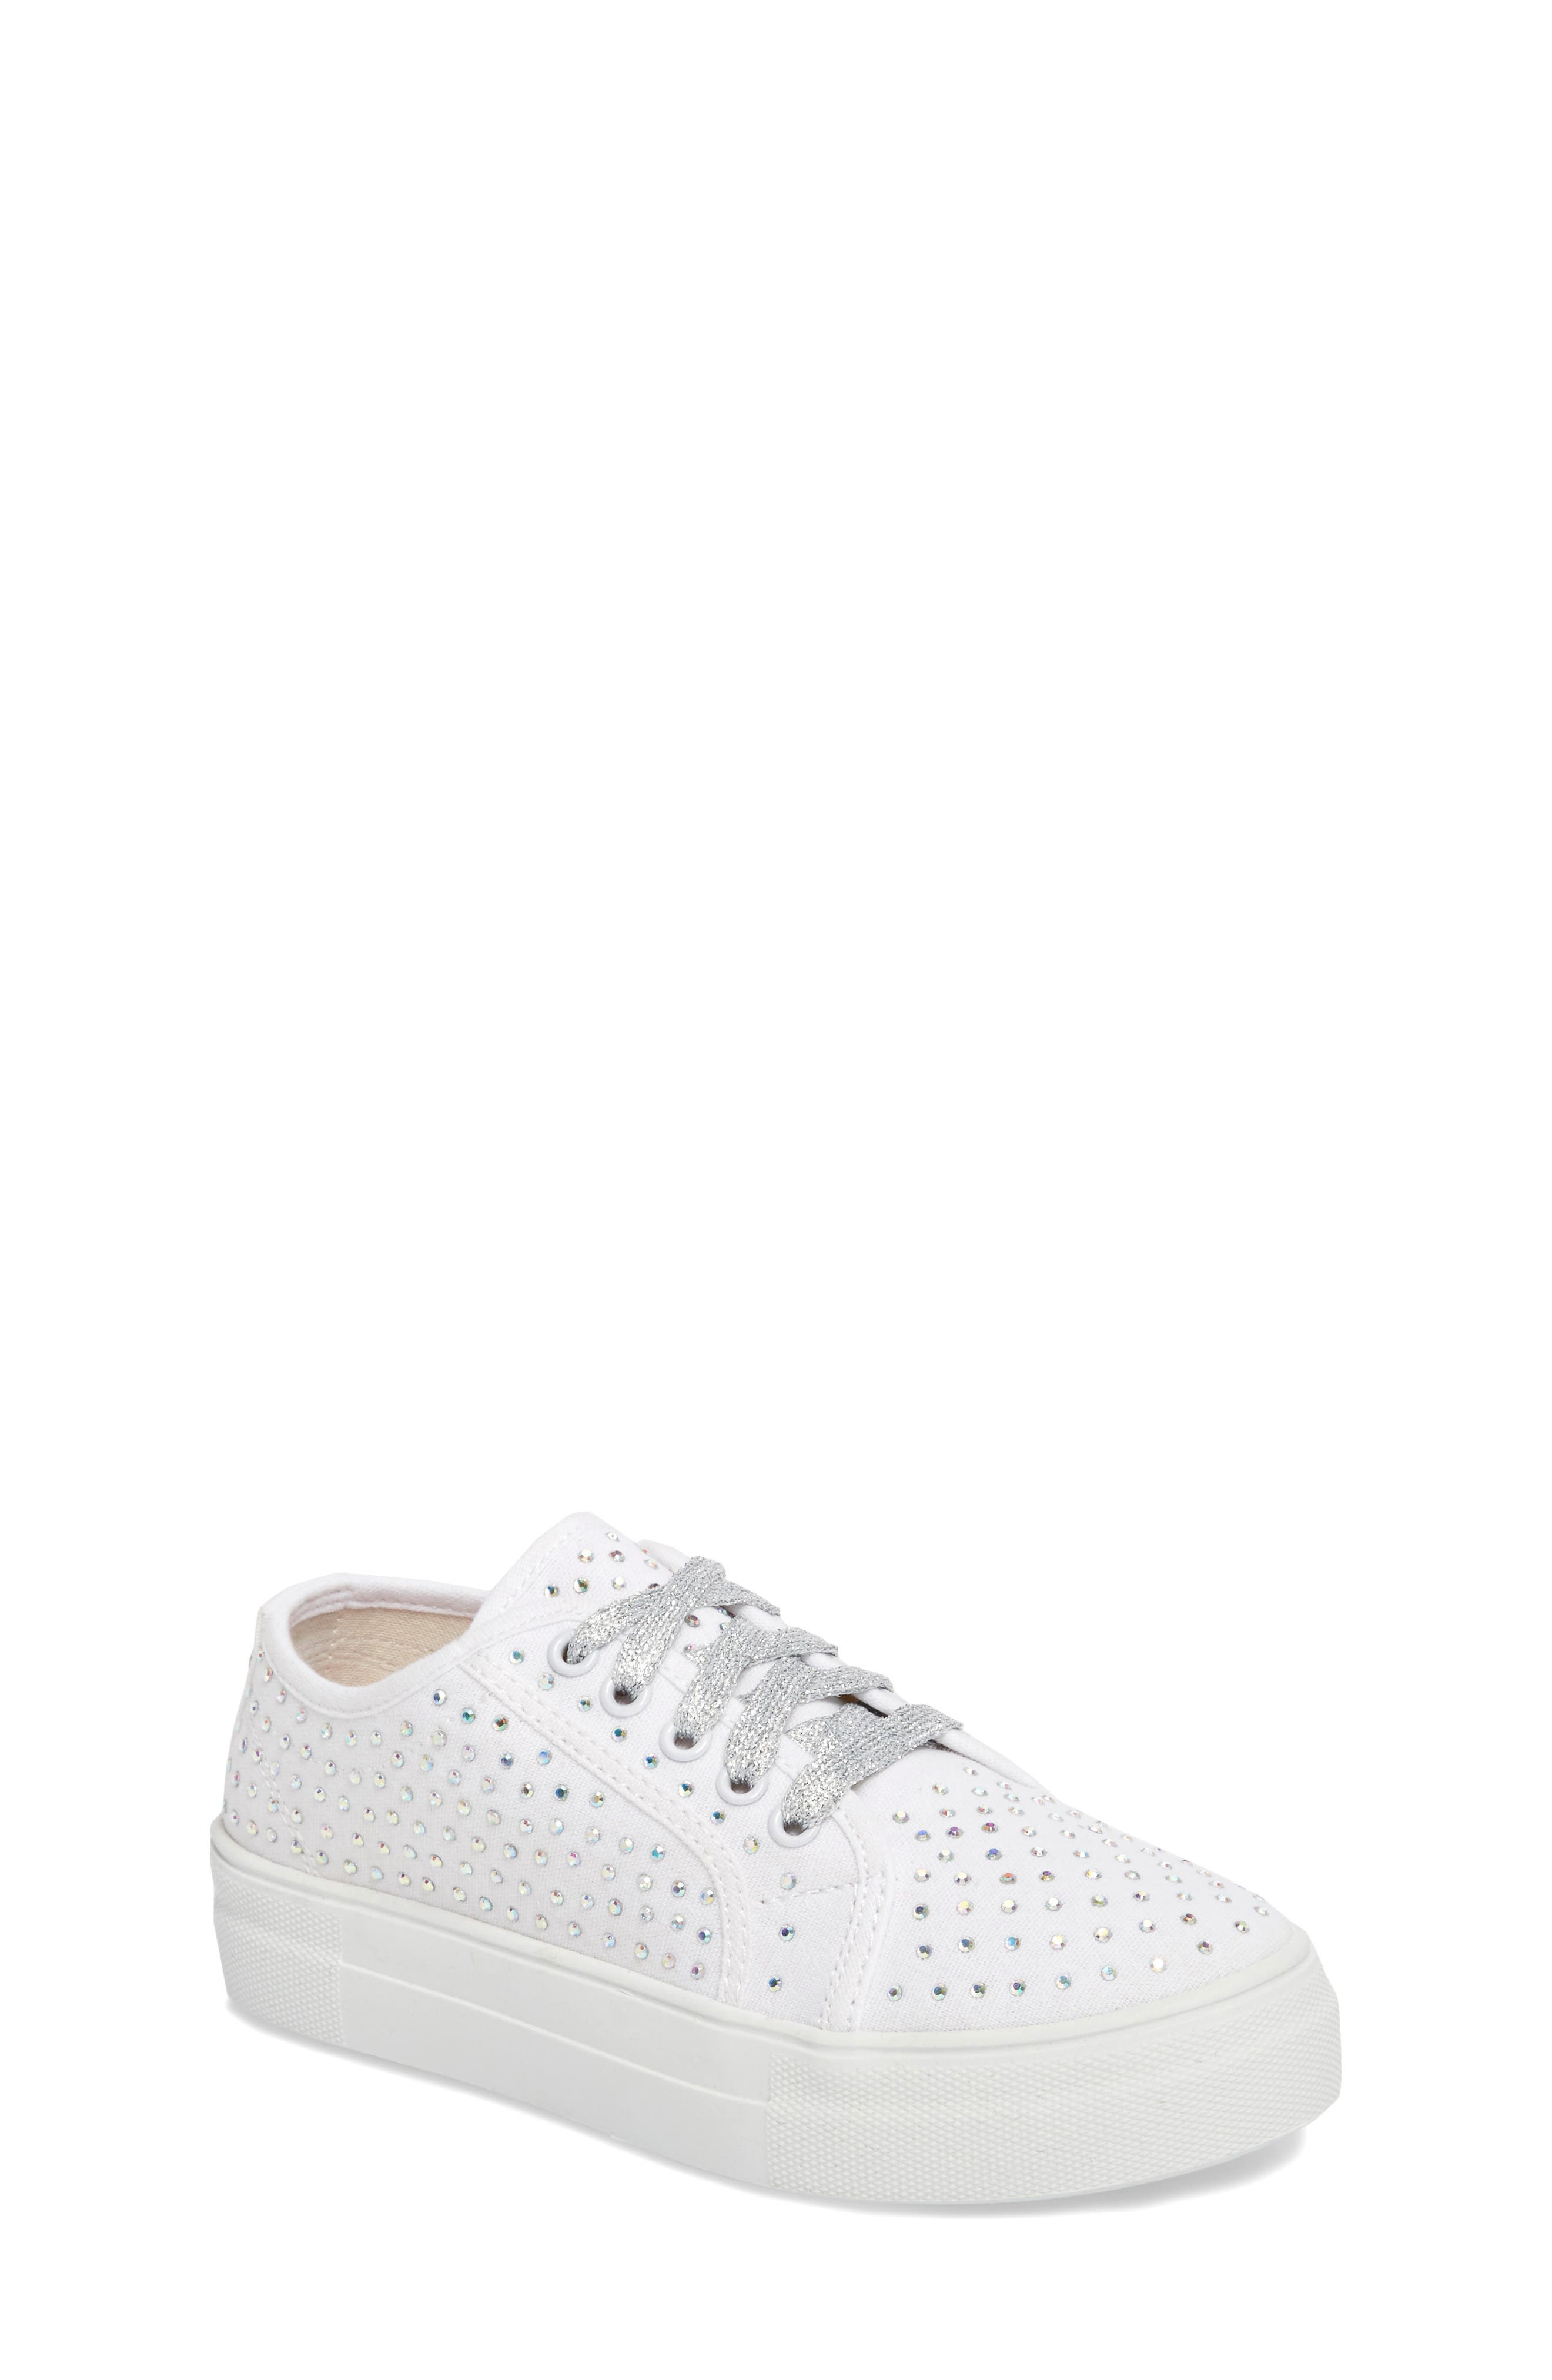 Steve Madden Jmono Sneaker (Little Kid & Big Kid)